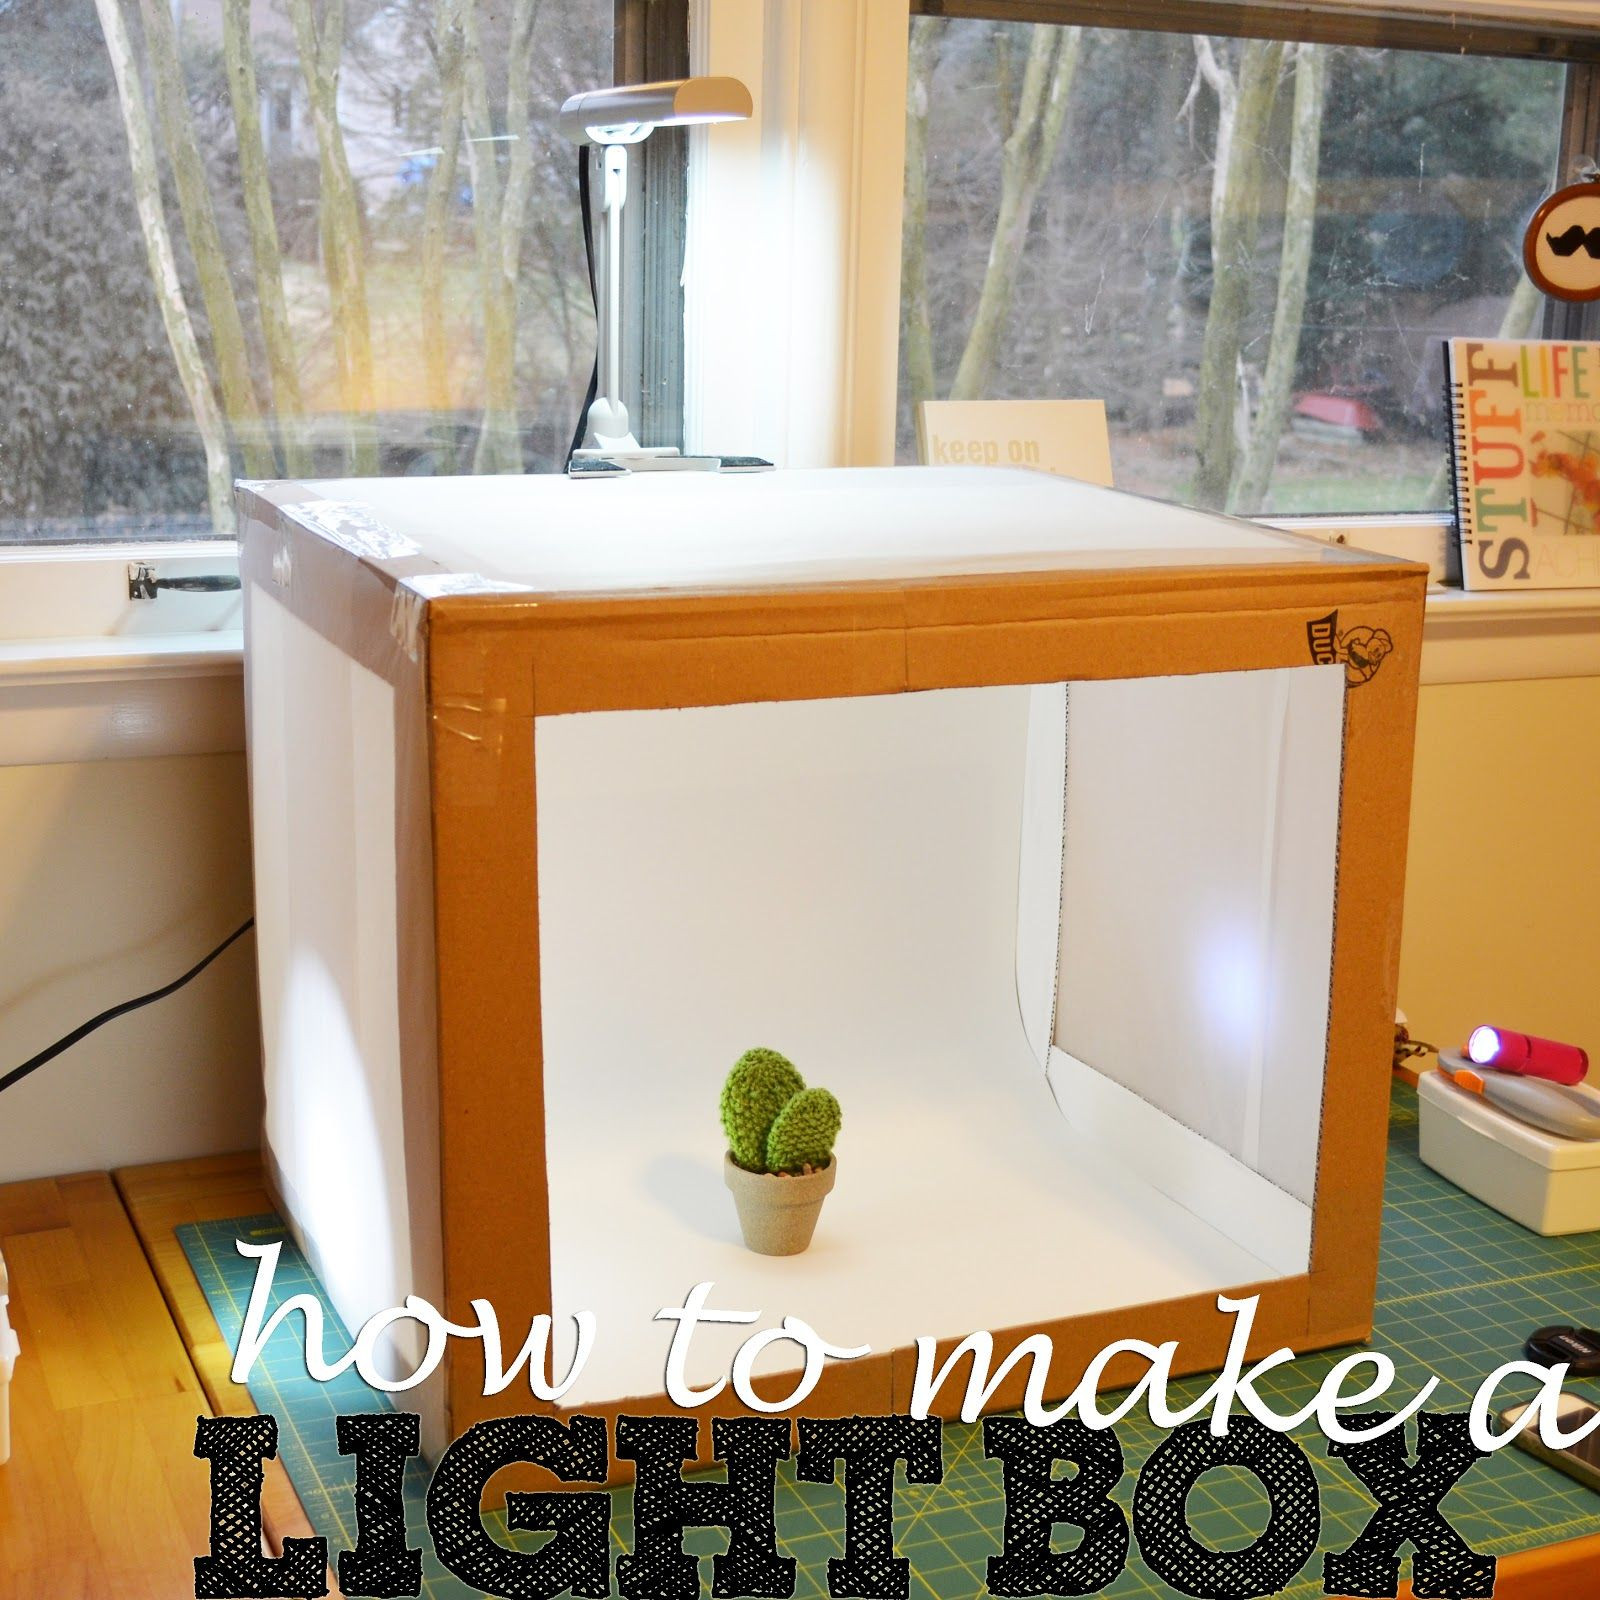 Photo Light Box DIY  light box